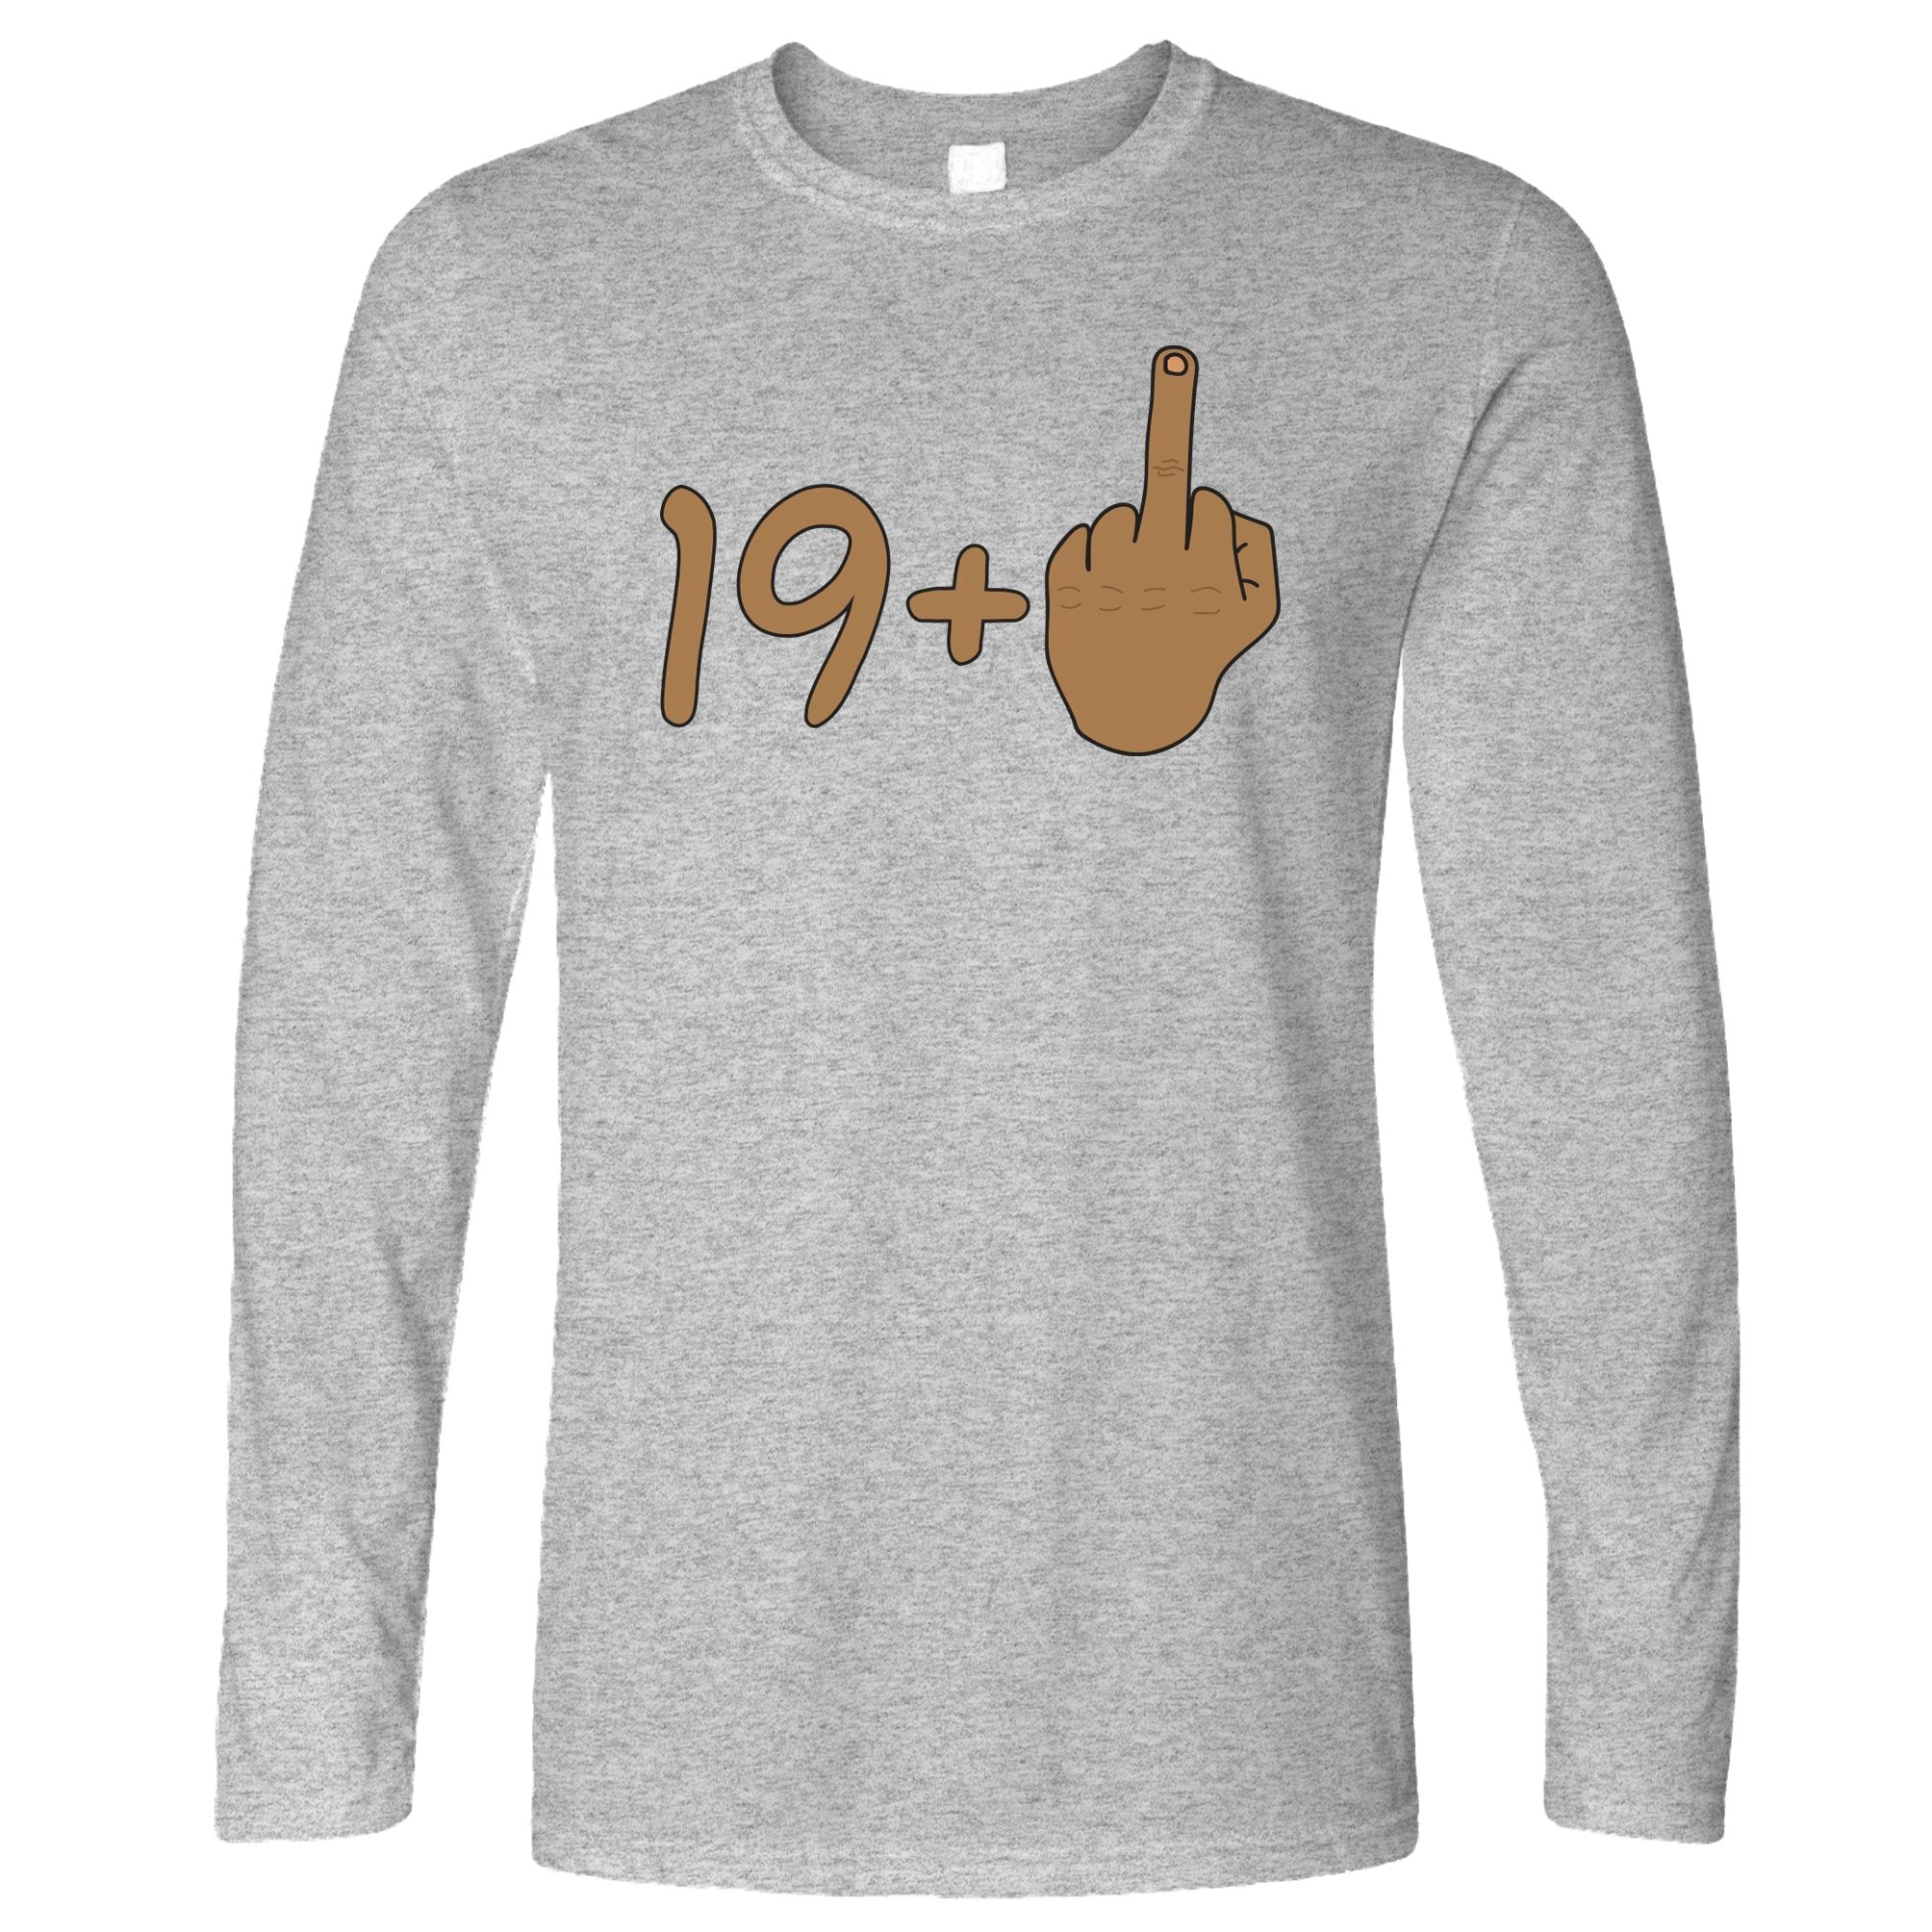 Rude 20th Birthday Long Sleeve Tanned Middle Finger T-Shirt